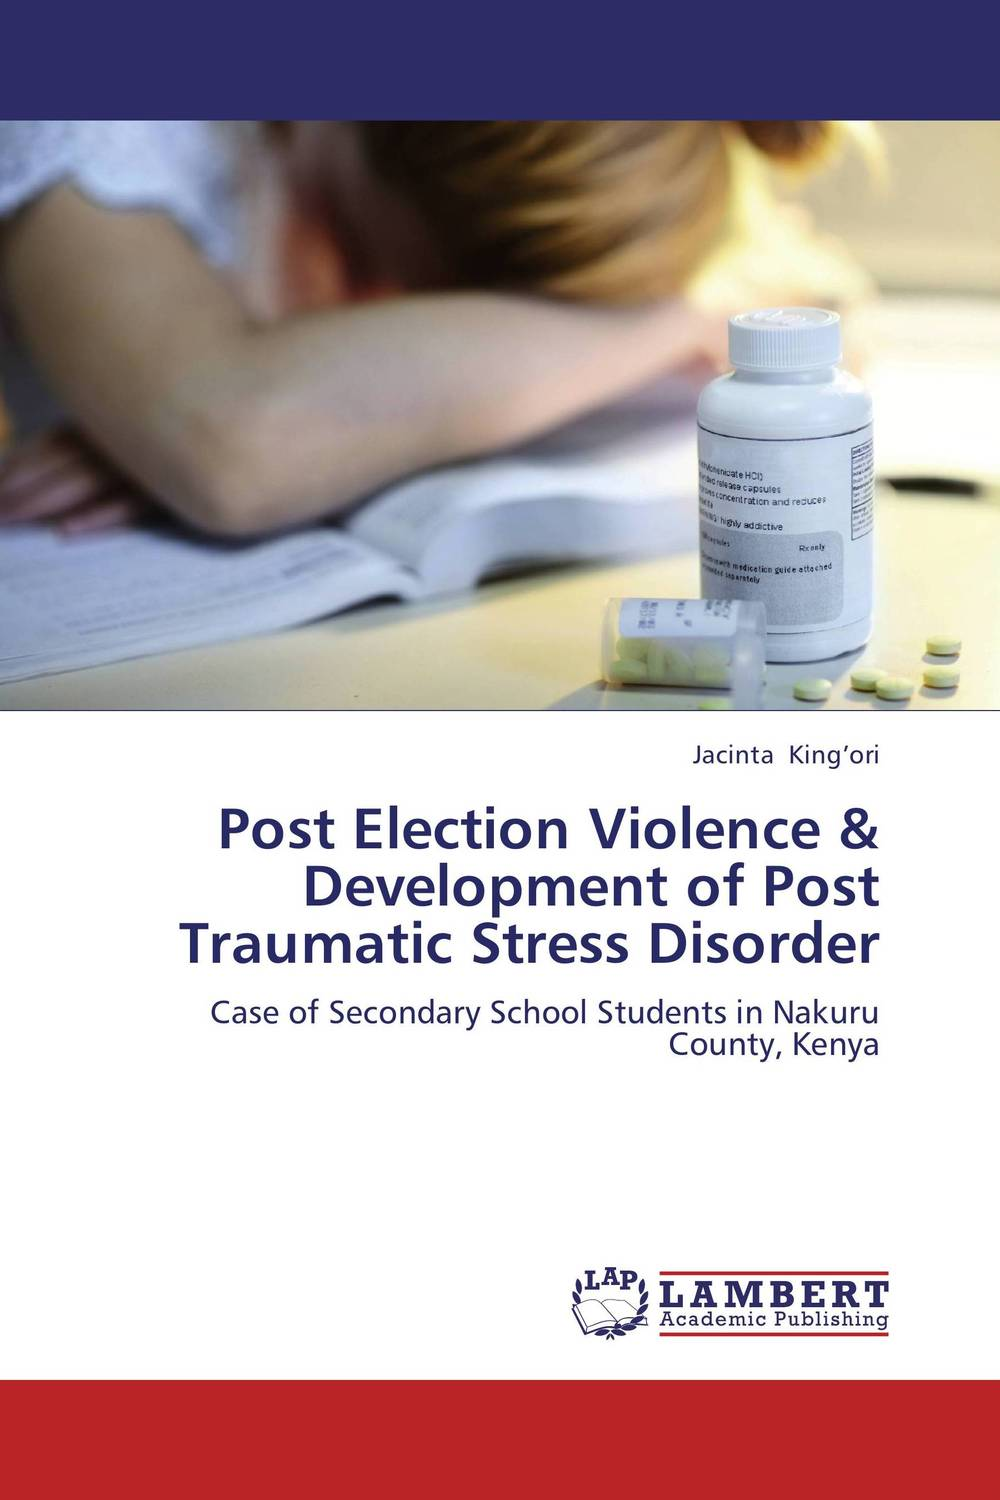 Post Election Violence & Development of Post Traumatic Stress Disorder epilepsy in children psychological concerns